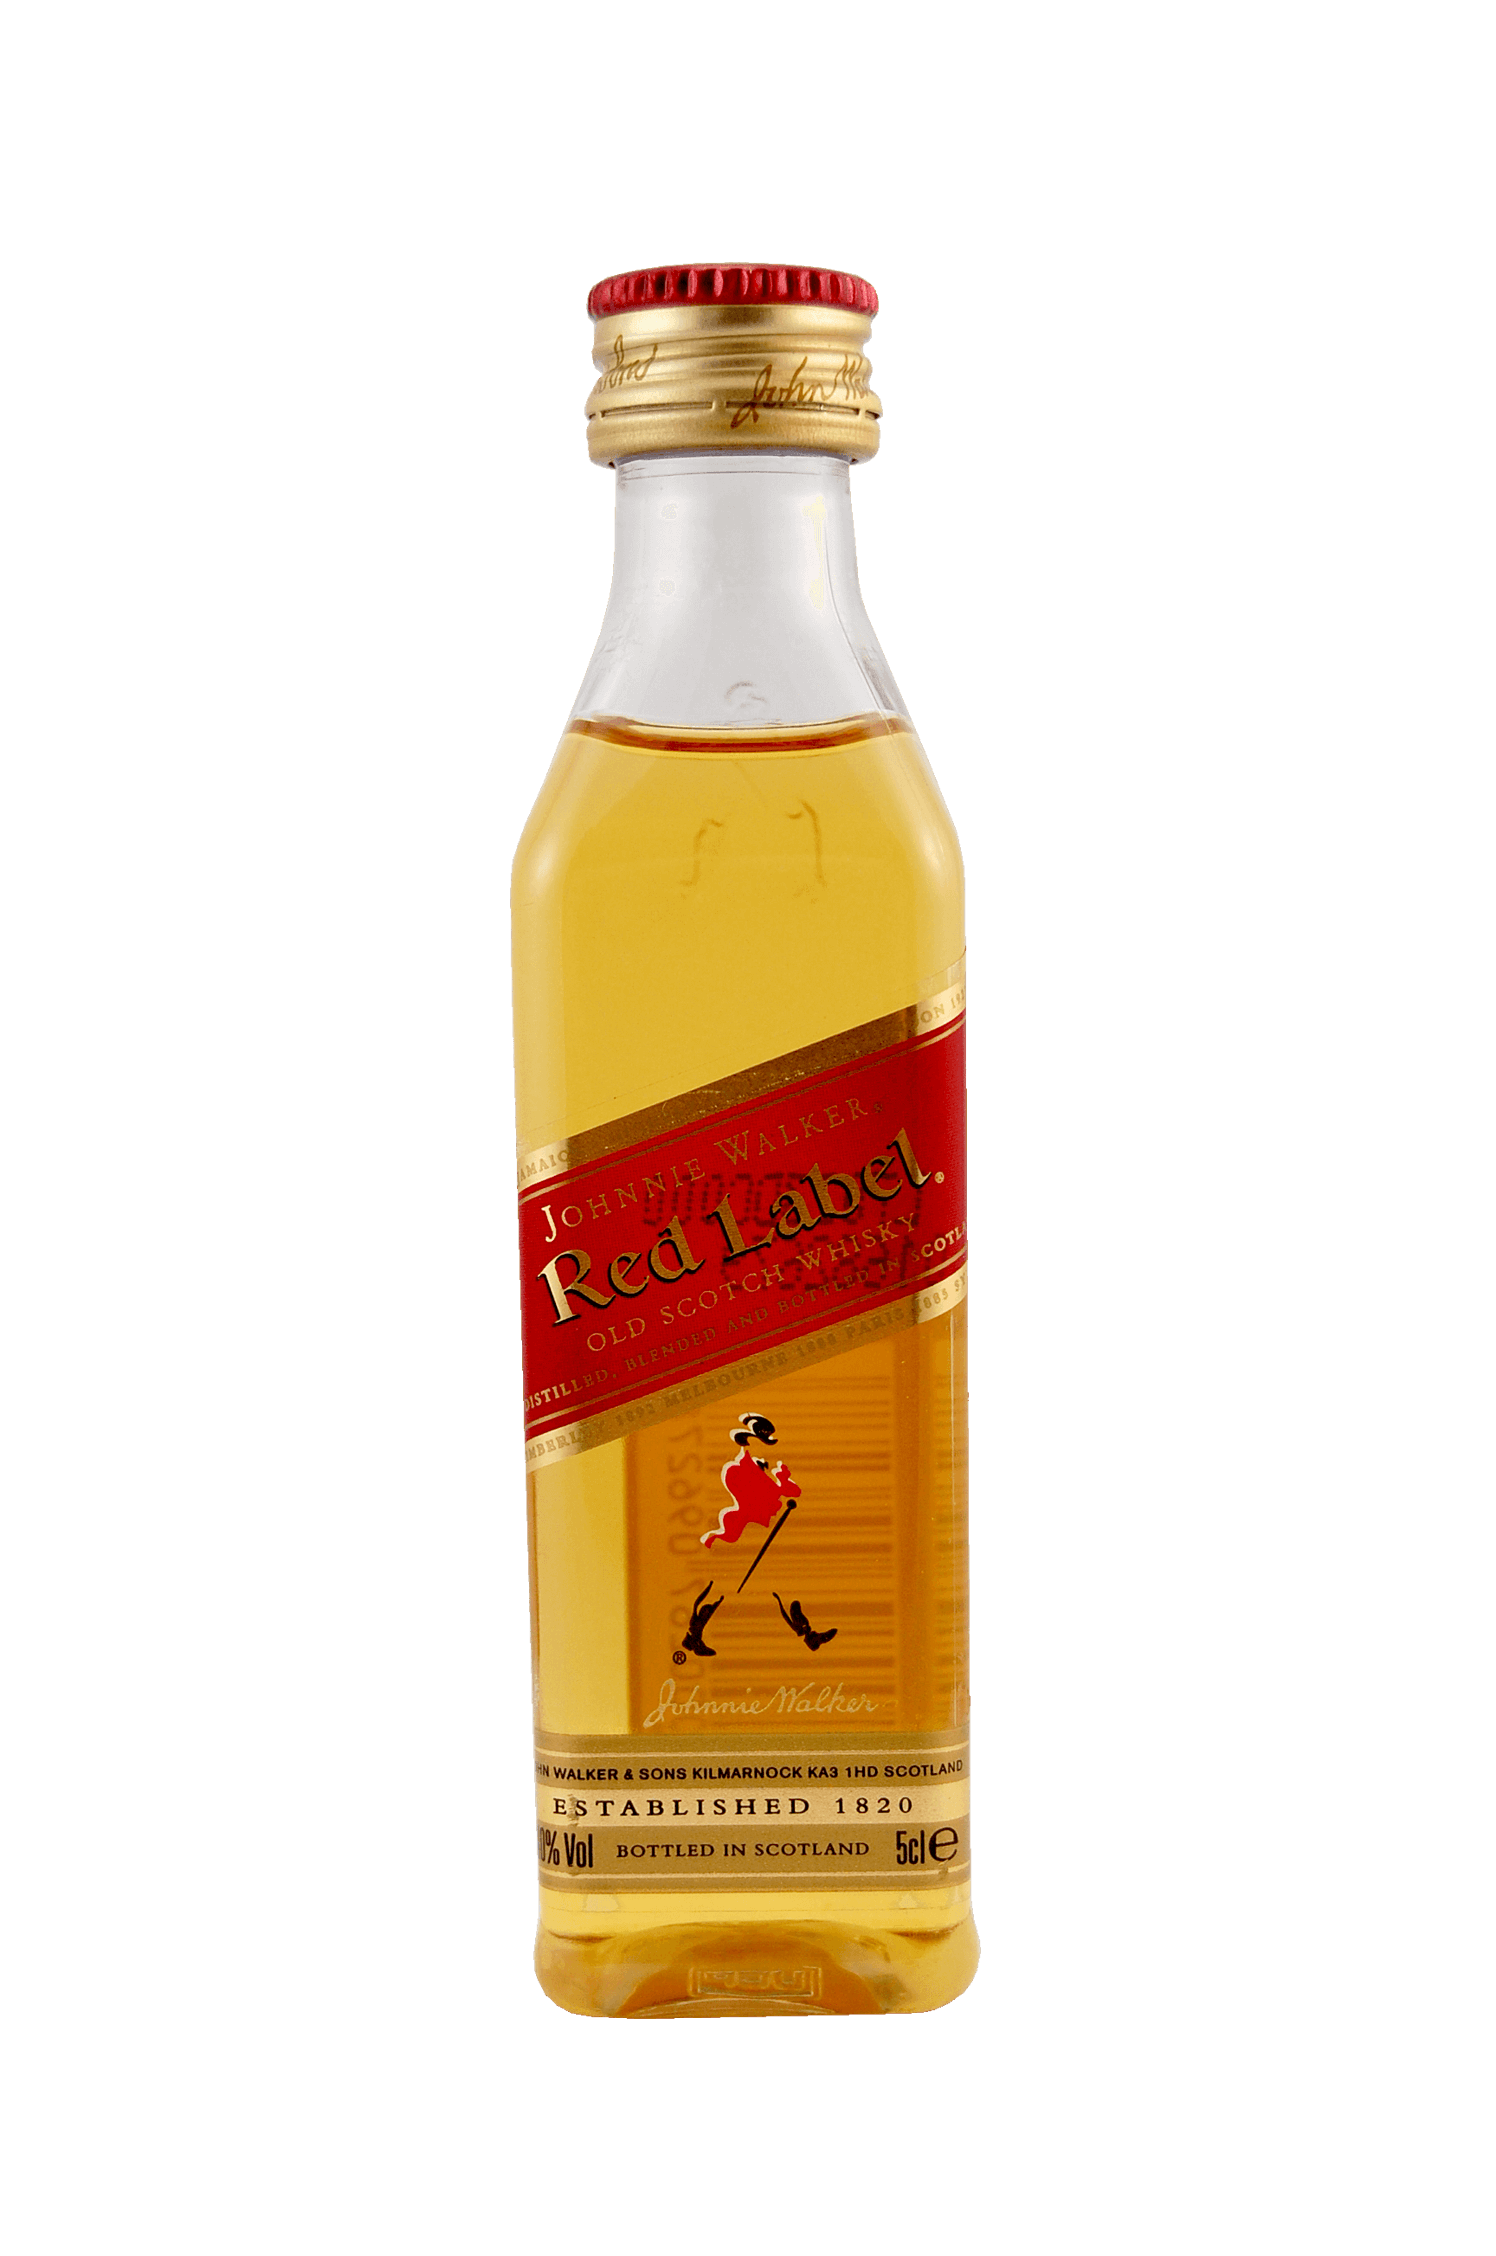 Red Label Old Scotch Whiskey